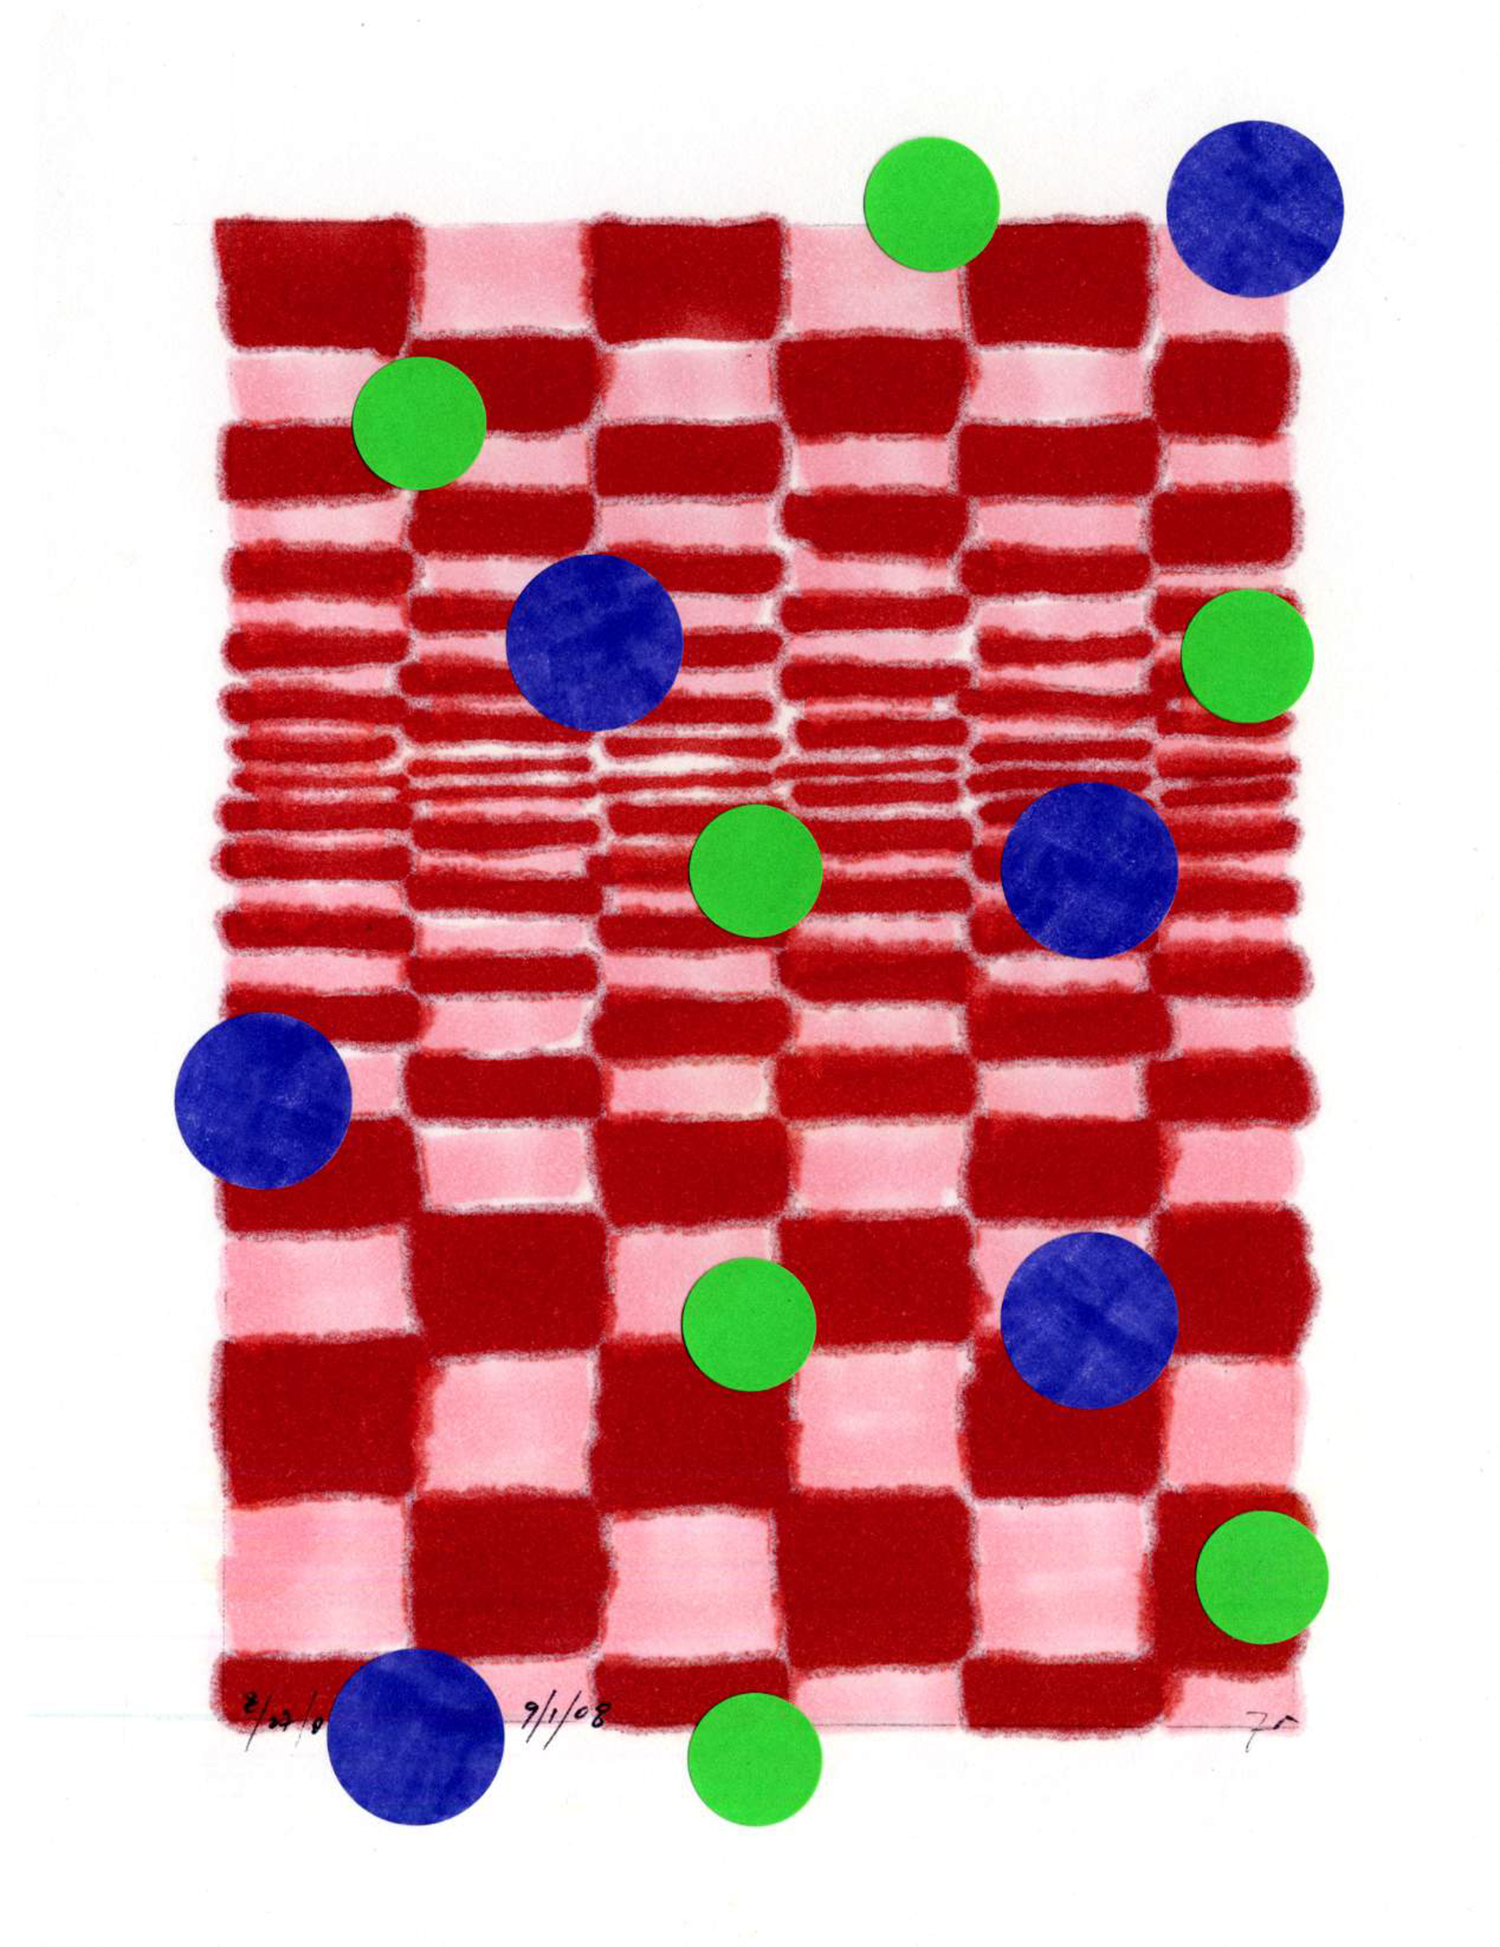 dwg08_37  , 2008, mixed media on paper, 12 x 9 in.